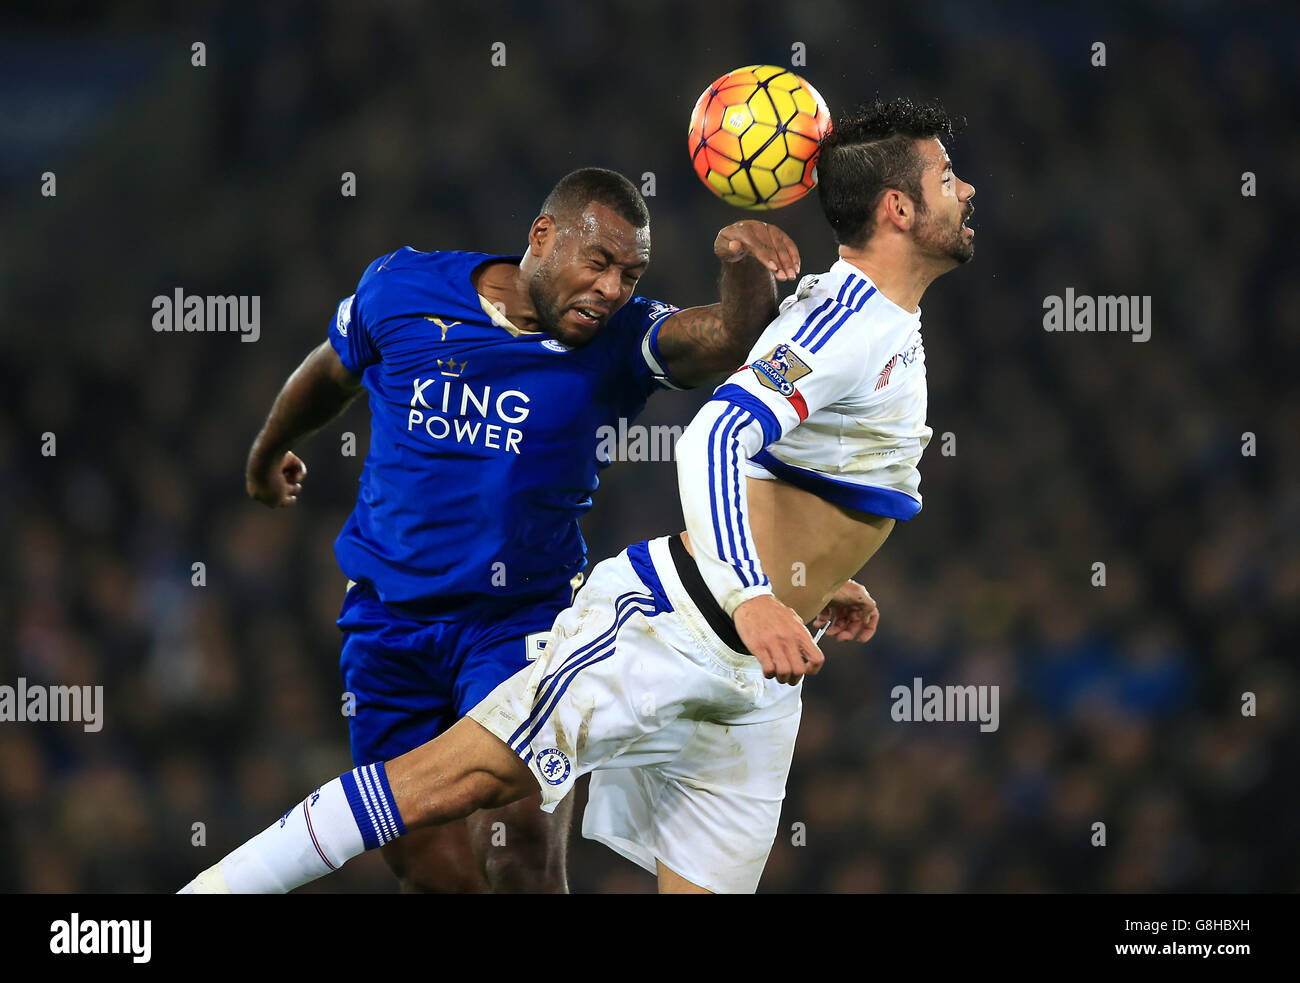 Leicester City's Wes Morgan (left) and Chelsea's Diego Costa battle for the ball during the Barclays Premier League match at The King Power Stadium, Leicester. Stock Photo